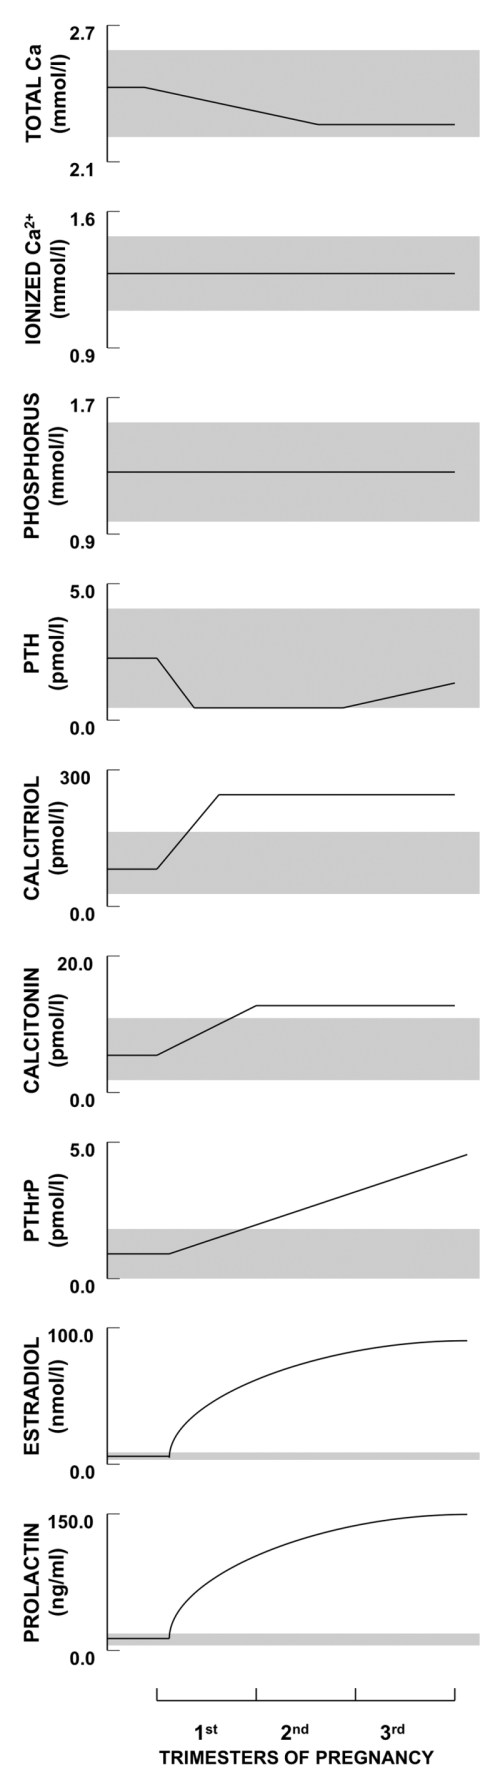 small resolution of figure 2 schematic illustration of the longitudinal changes in calcium phosphate and